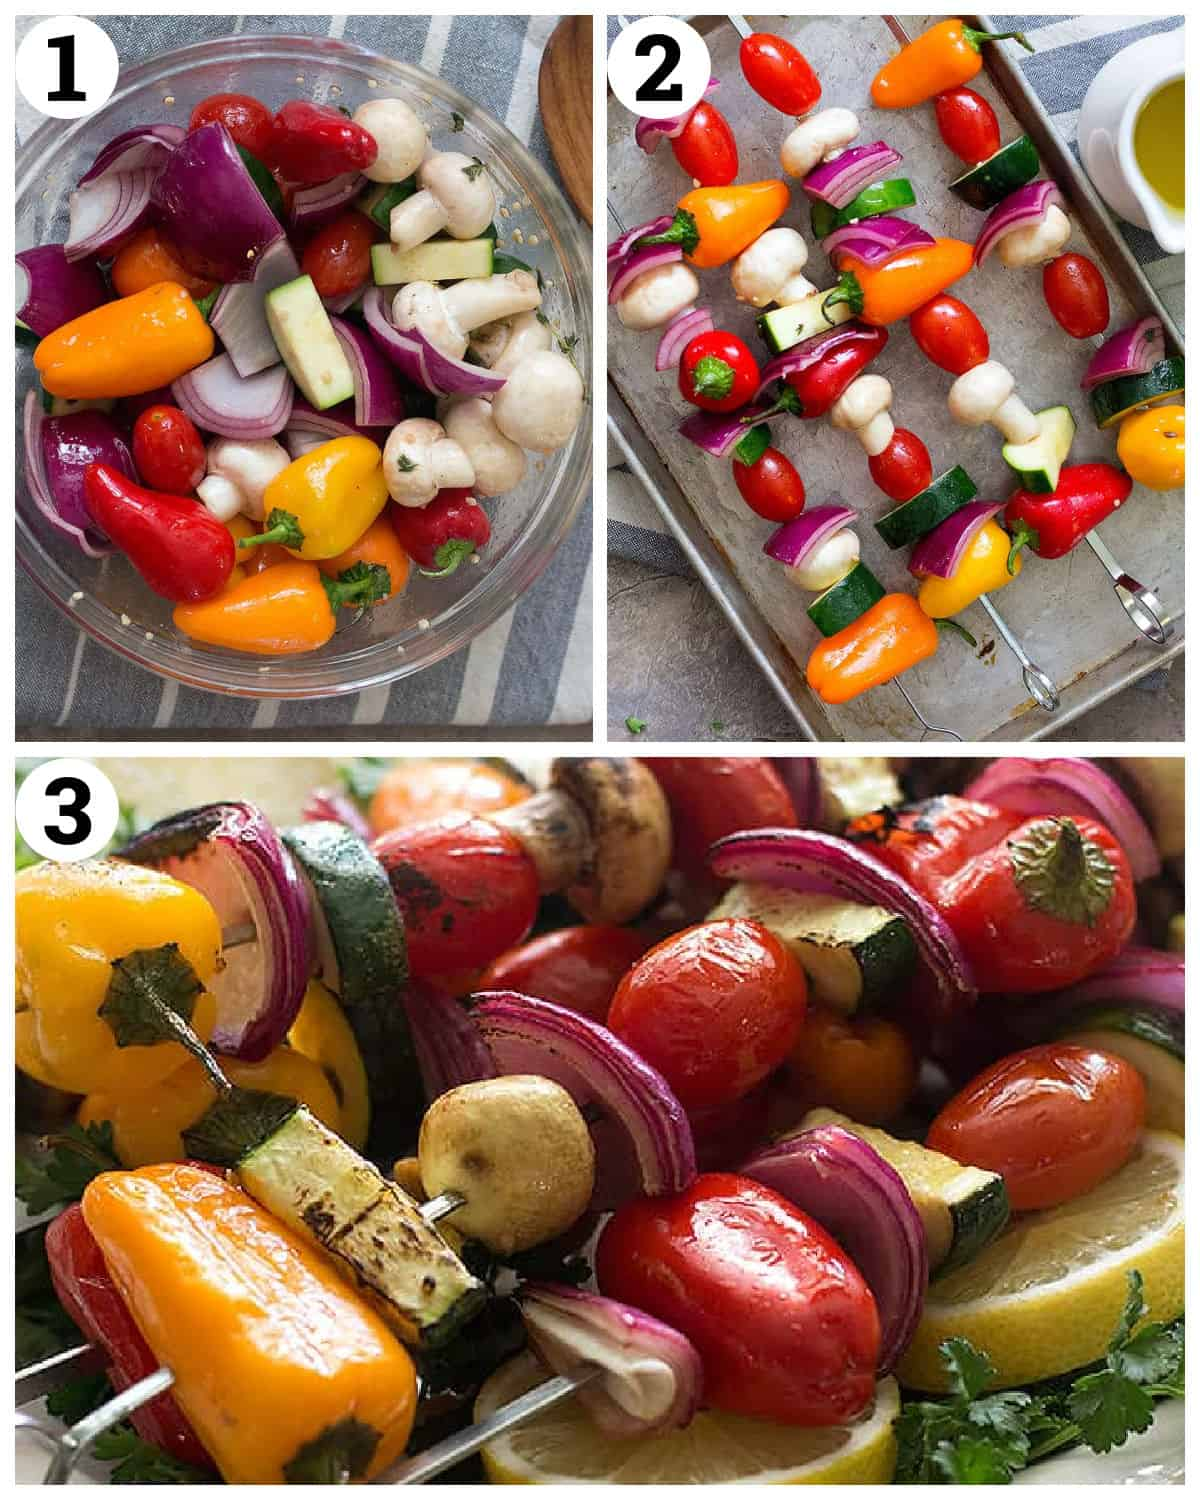 marinate the veggies and thread them on skewers then grill.